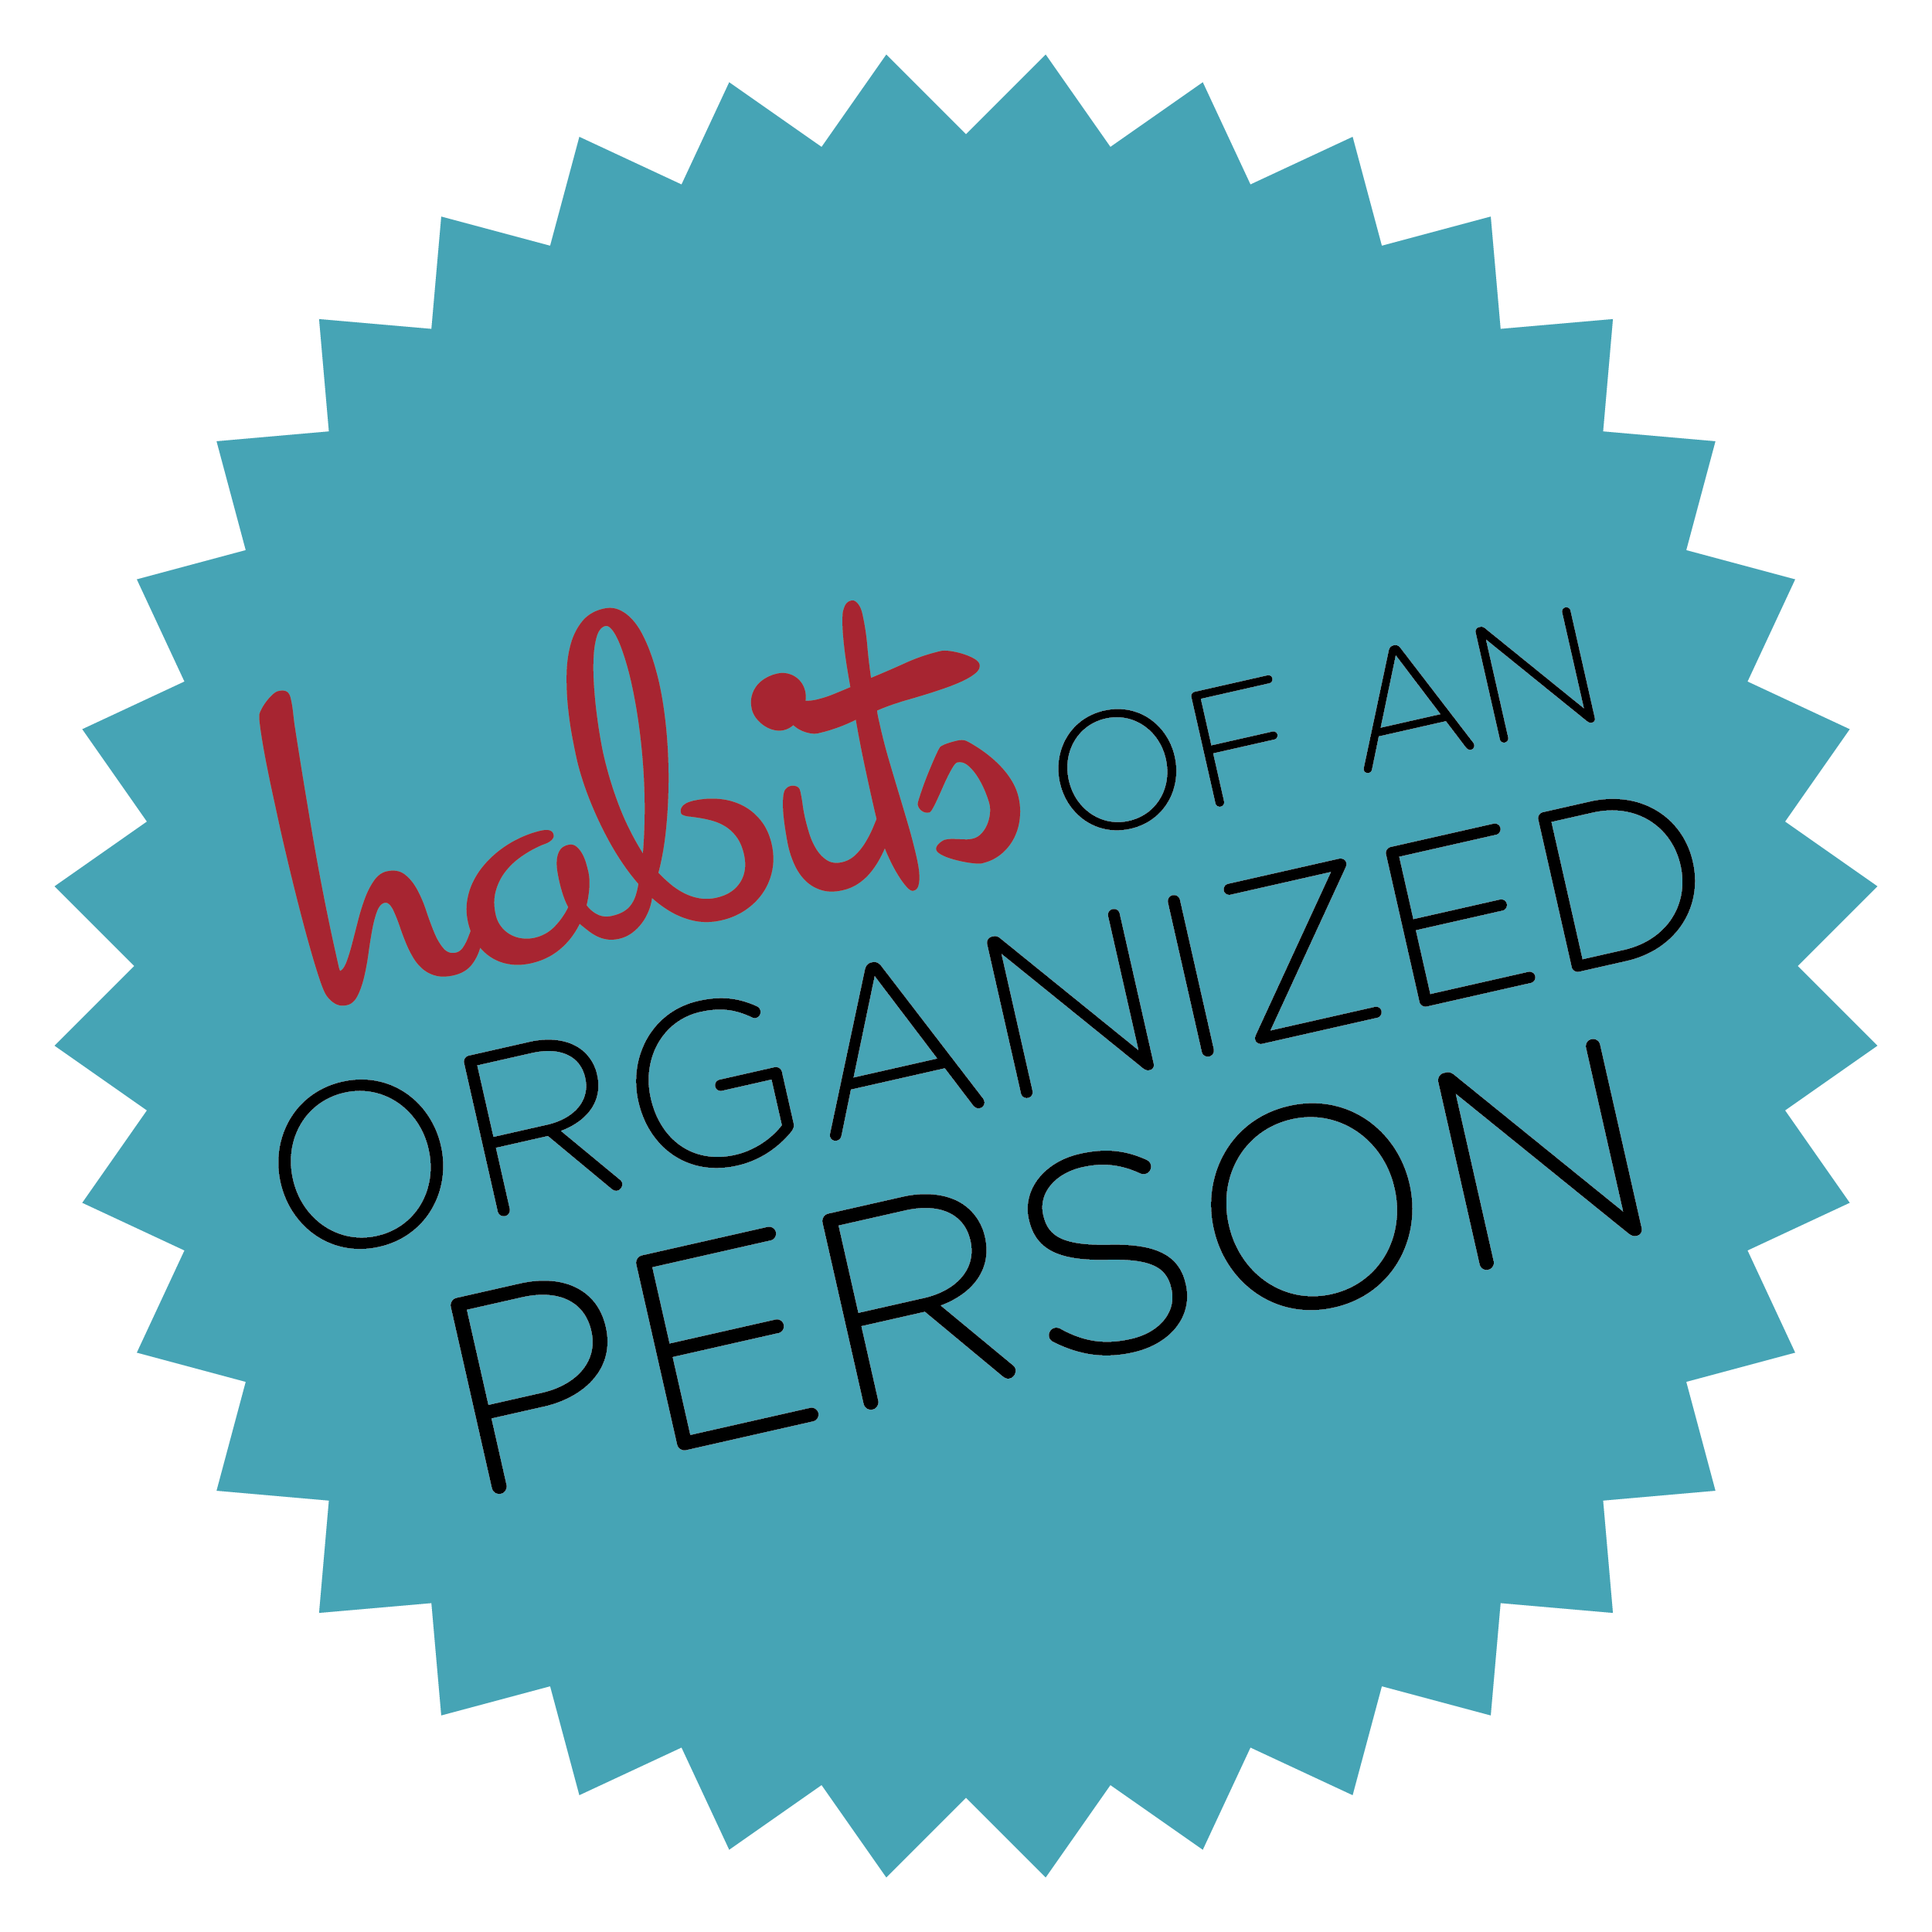 Habits of an Organized Person: Find What Works For You